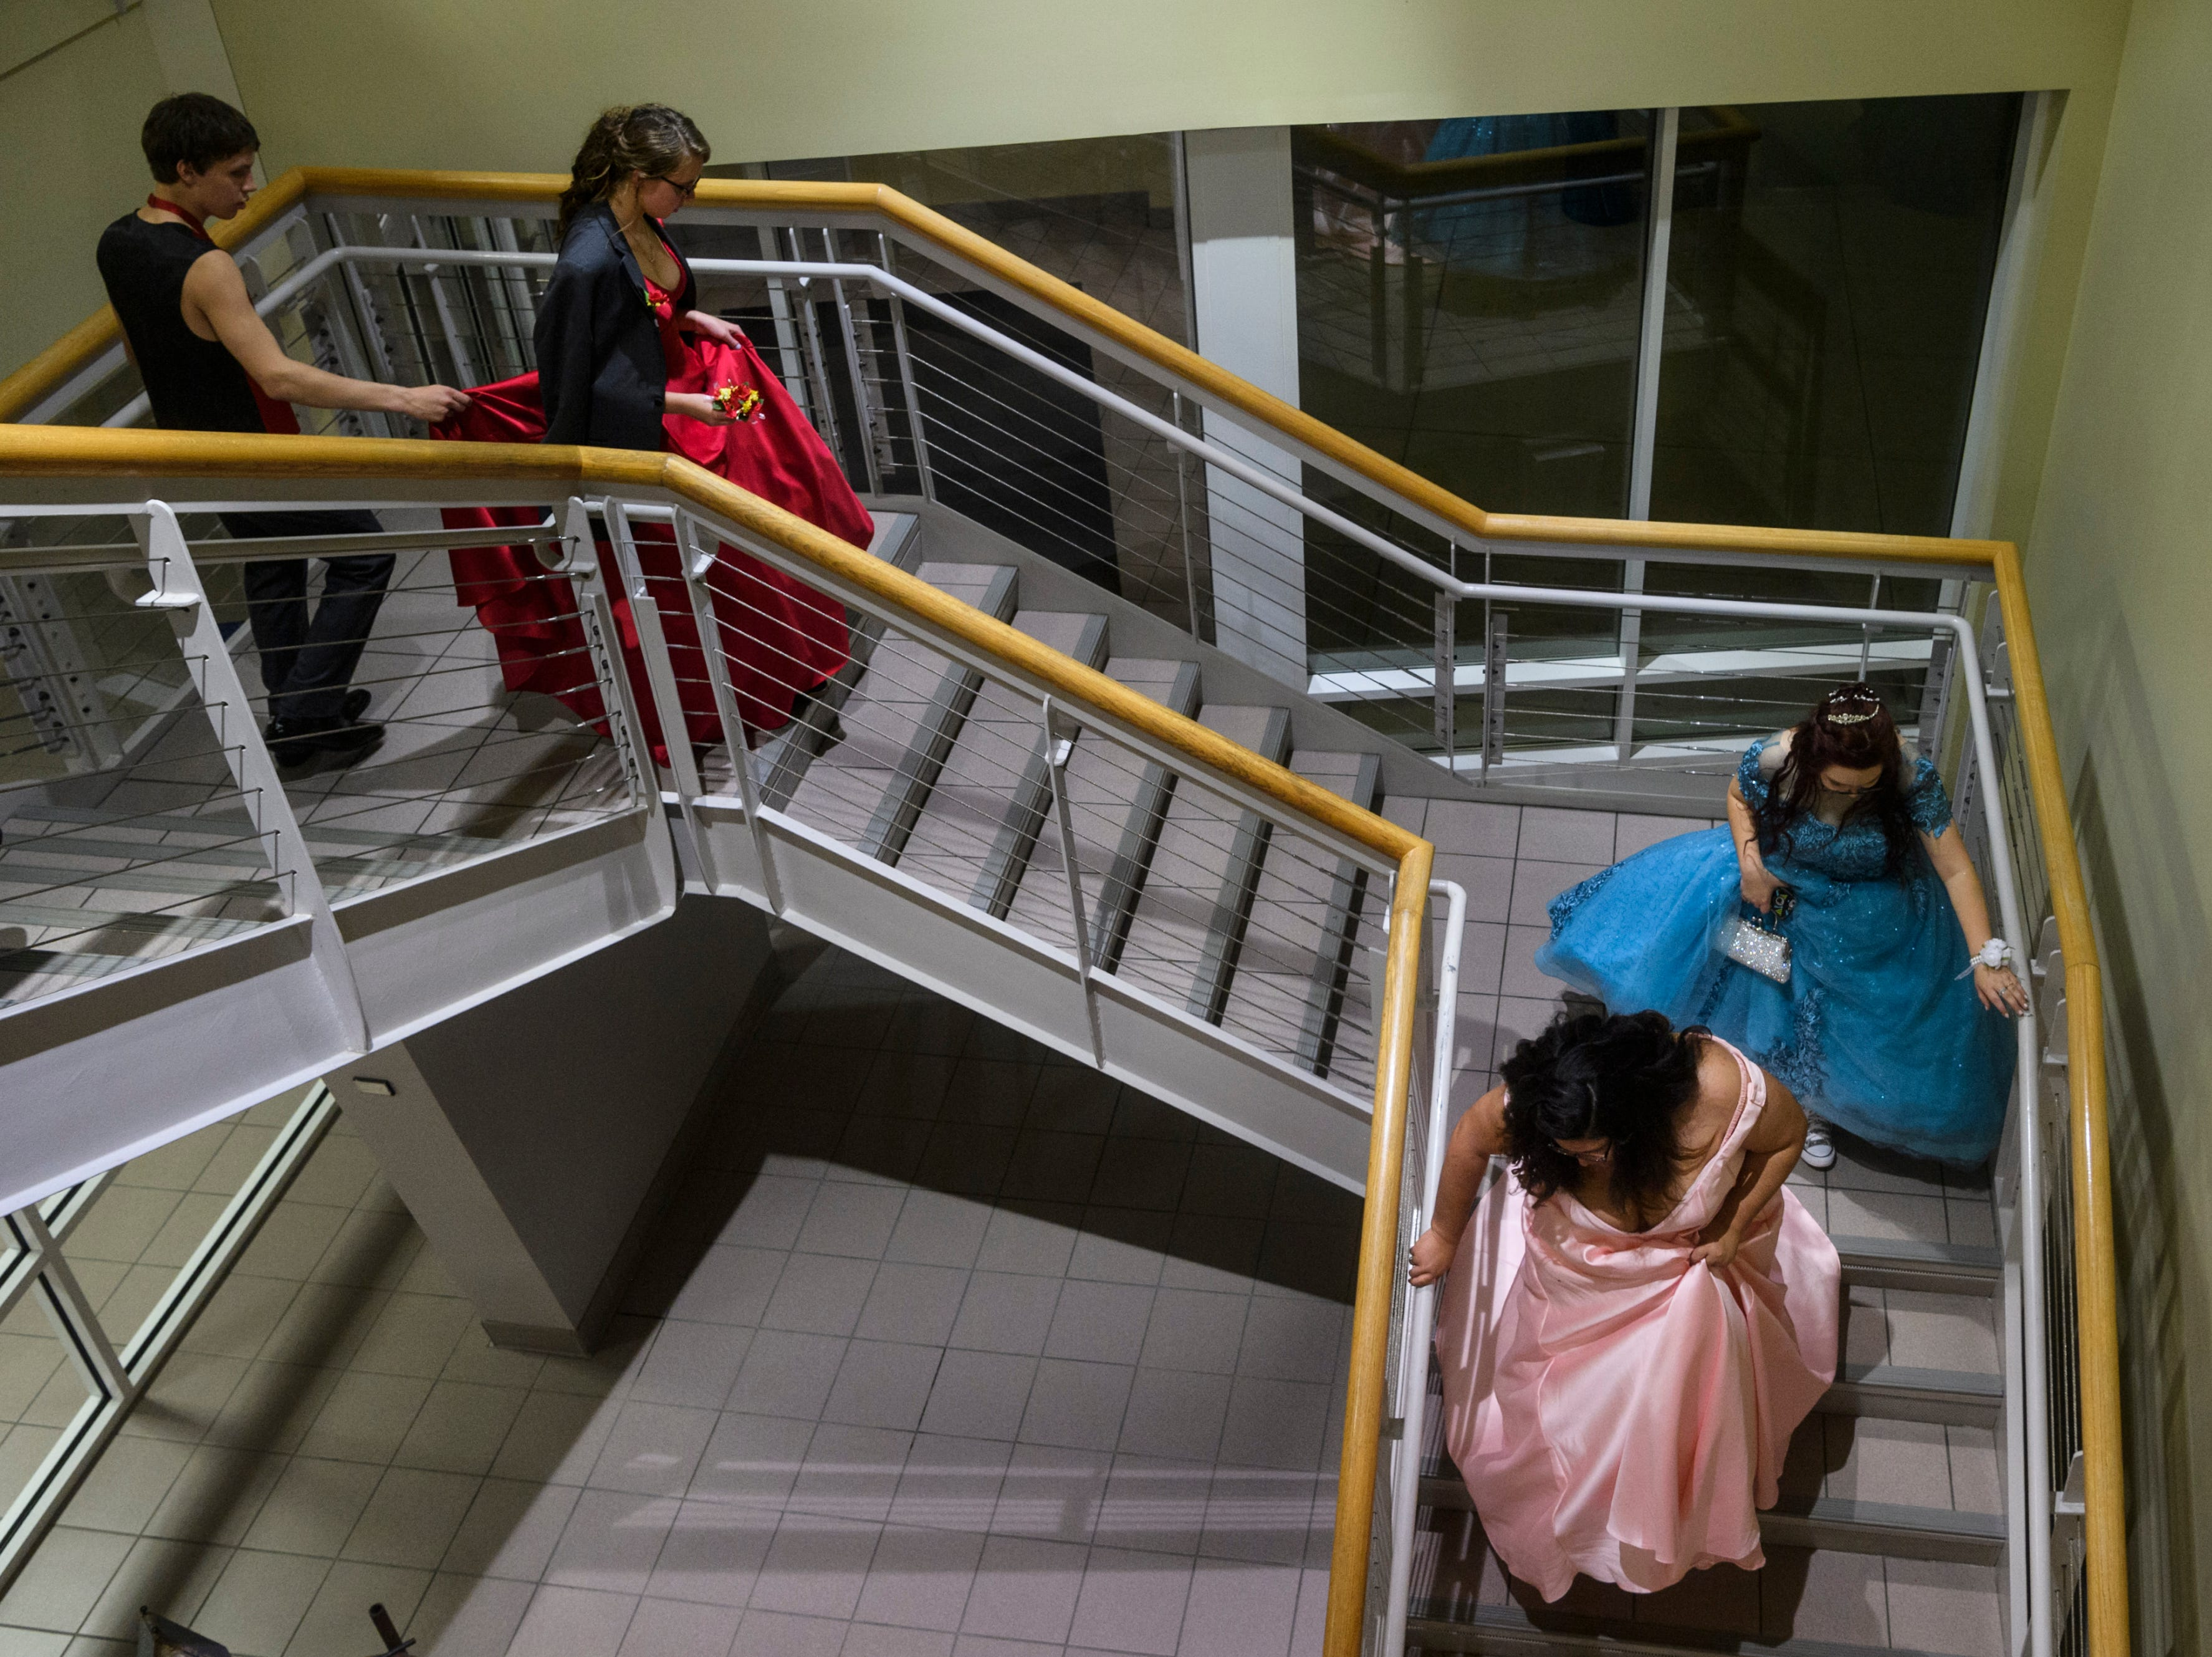 Felicitie Flemmings, from bottom, and Alexis Adamaitis carefully walk down the stairs followed by other prom goers once the dance was over at University of Southern Indiana in Evansville, Ind., Saturday, May 4, 2019.